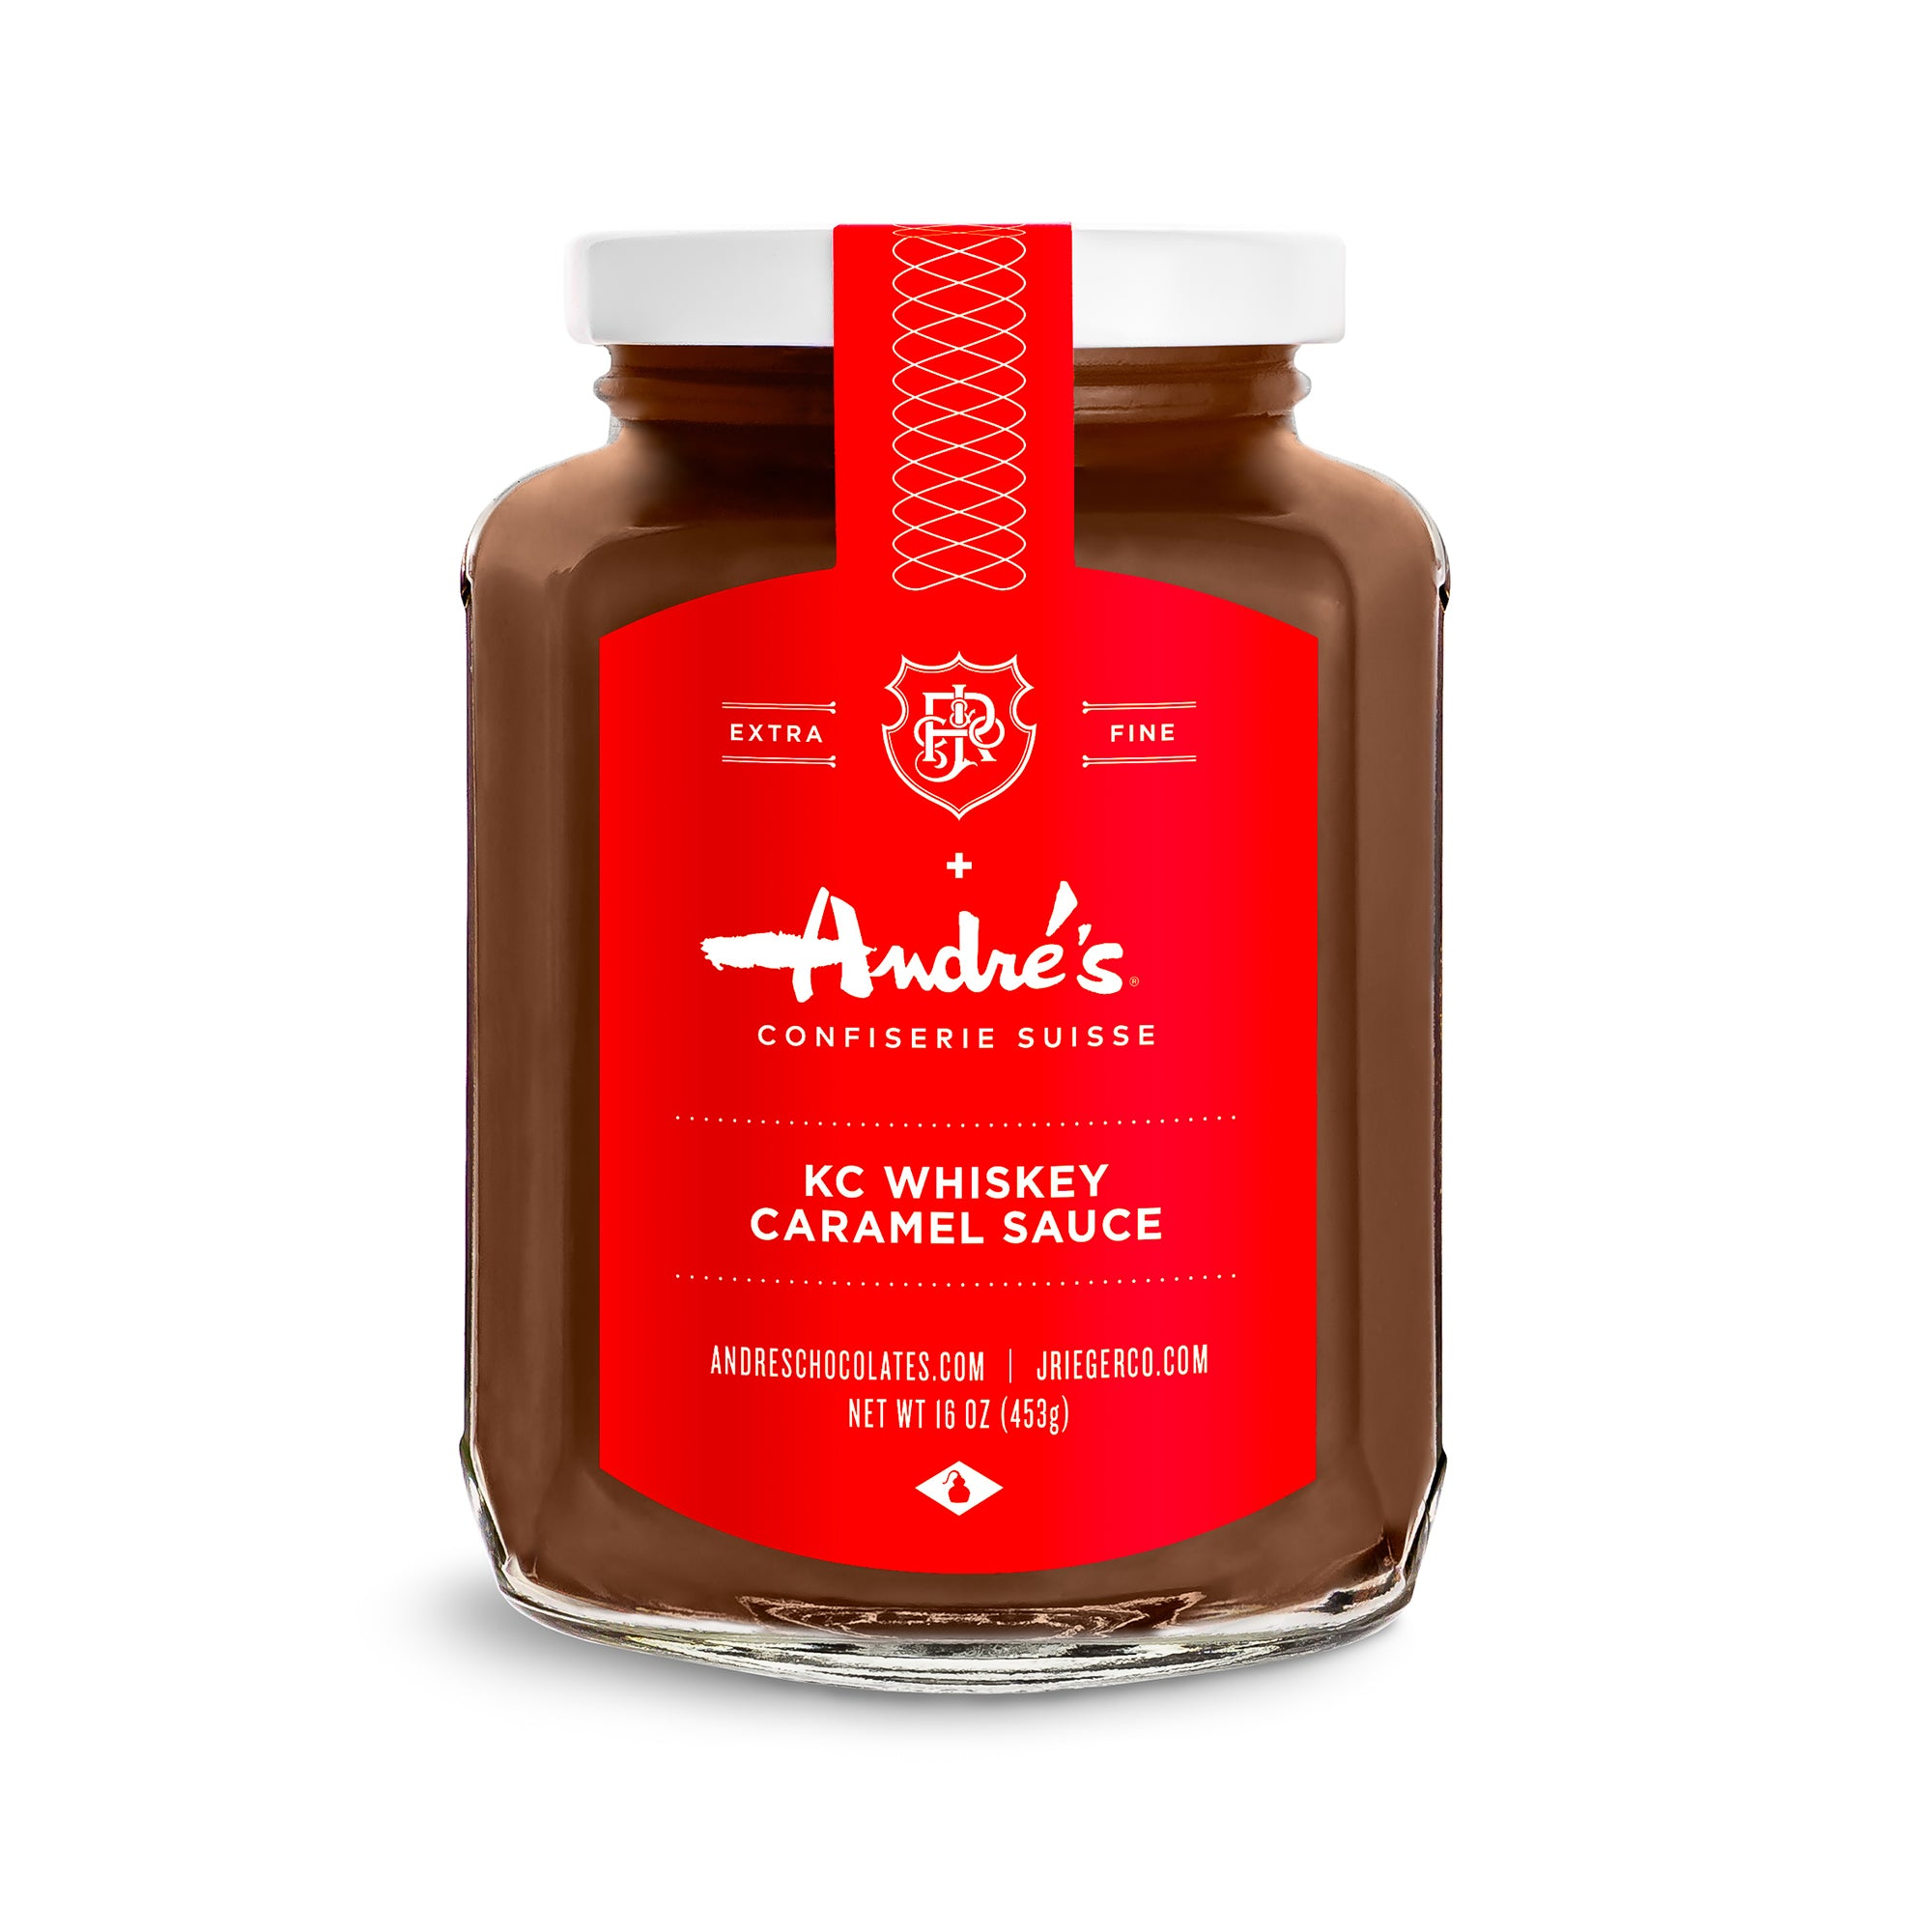 KC Whiskey Caramel Sauce